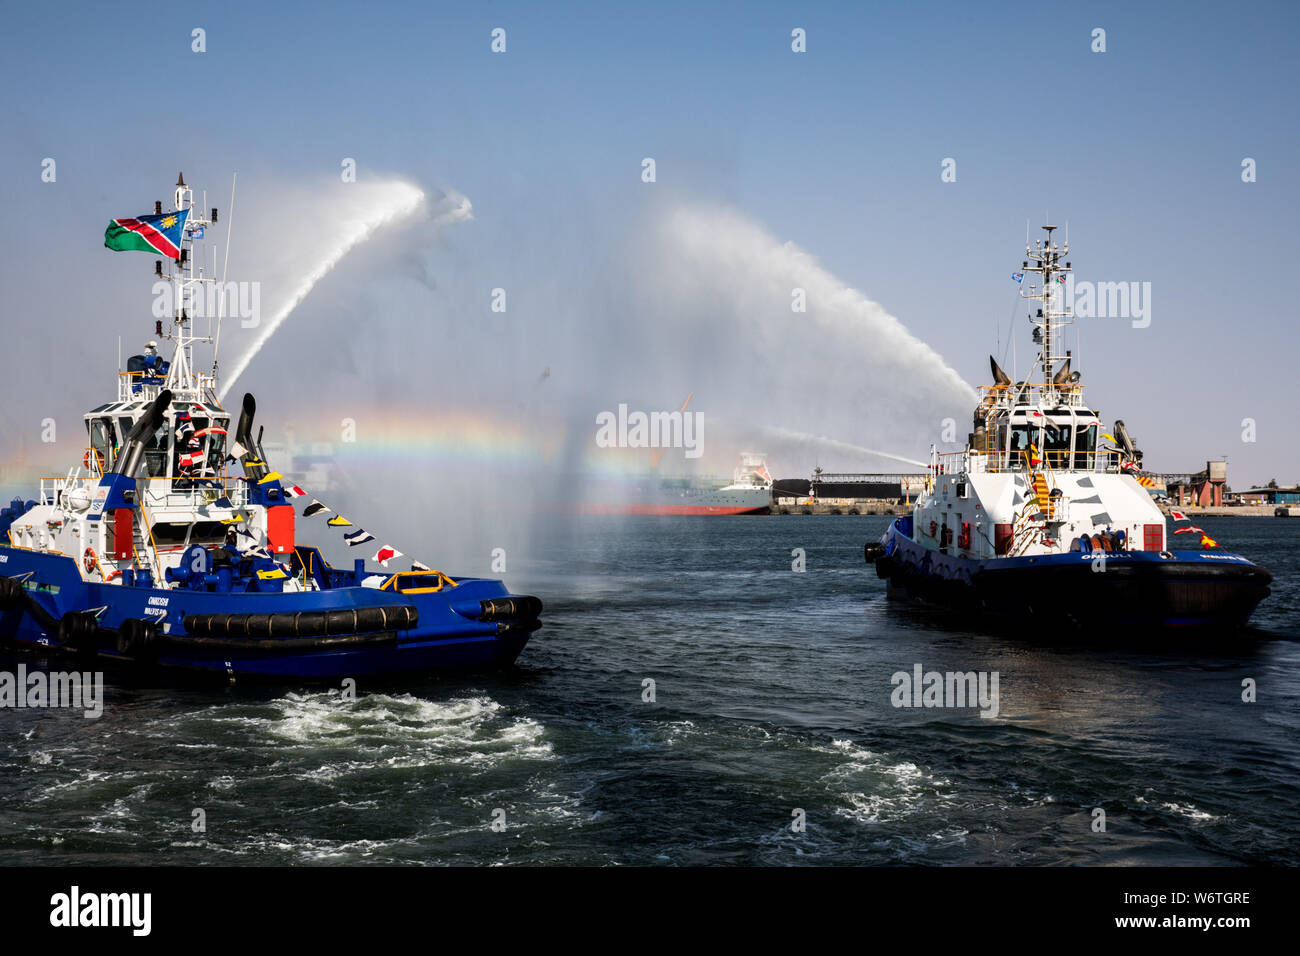 (190802) -- WALVIS BAY (NAMIBIA), Aug. 2, 2019 (Xinhua) -- Fire boats perform during the inauguration ceremony of the new container terminal in Walvis Bay, Namibia, Aug. 2, 2019. Namibia's quest to become an international trade hub and gateway advanced further Friday with the official inauguration of the country's 400-million-U.S.-dollar new container terminal in Walvis Bay by the county's President Hage Geingob. The new container terminal located in the port town of Walvis Bay was constructed on 40 hectares of land reclaimed from the sea by China Harbor Engineering Company Ltd (CHEC) under ju Stock Photo